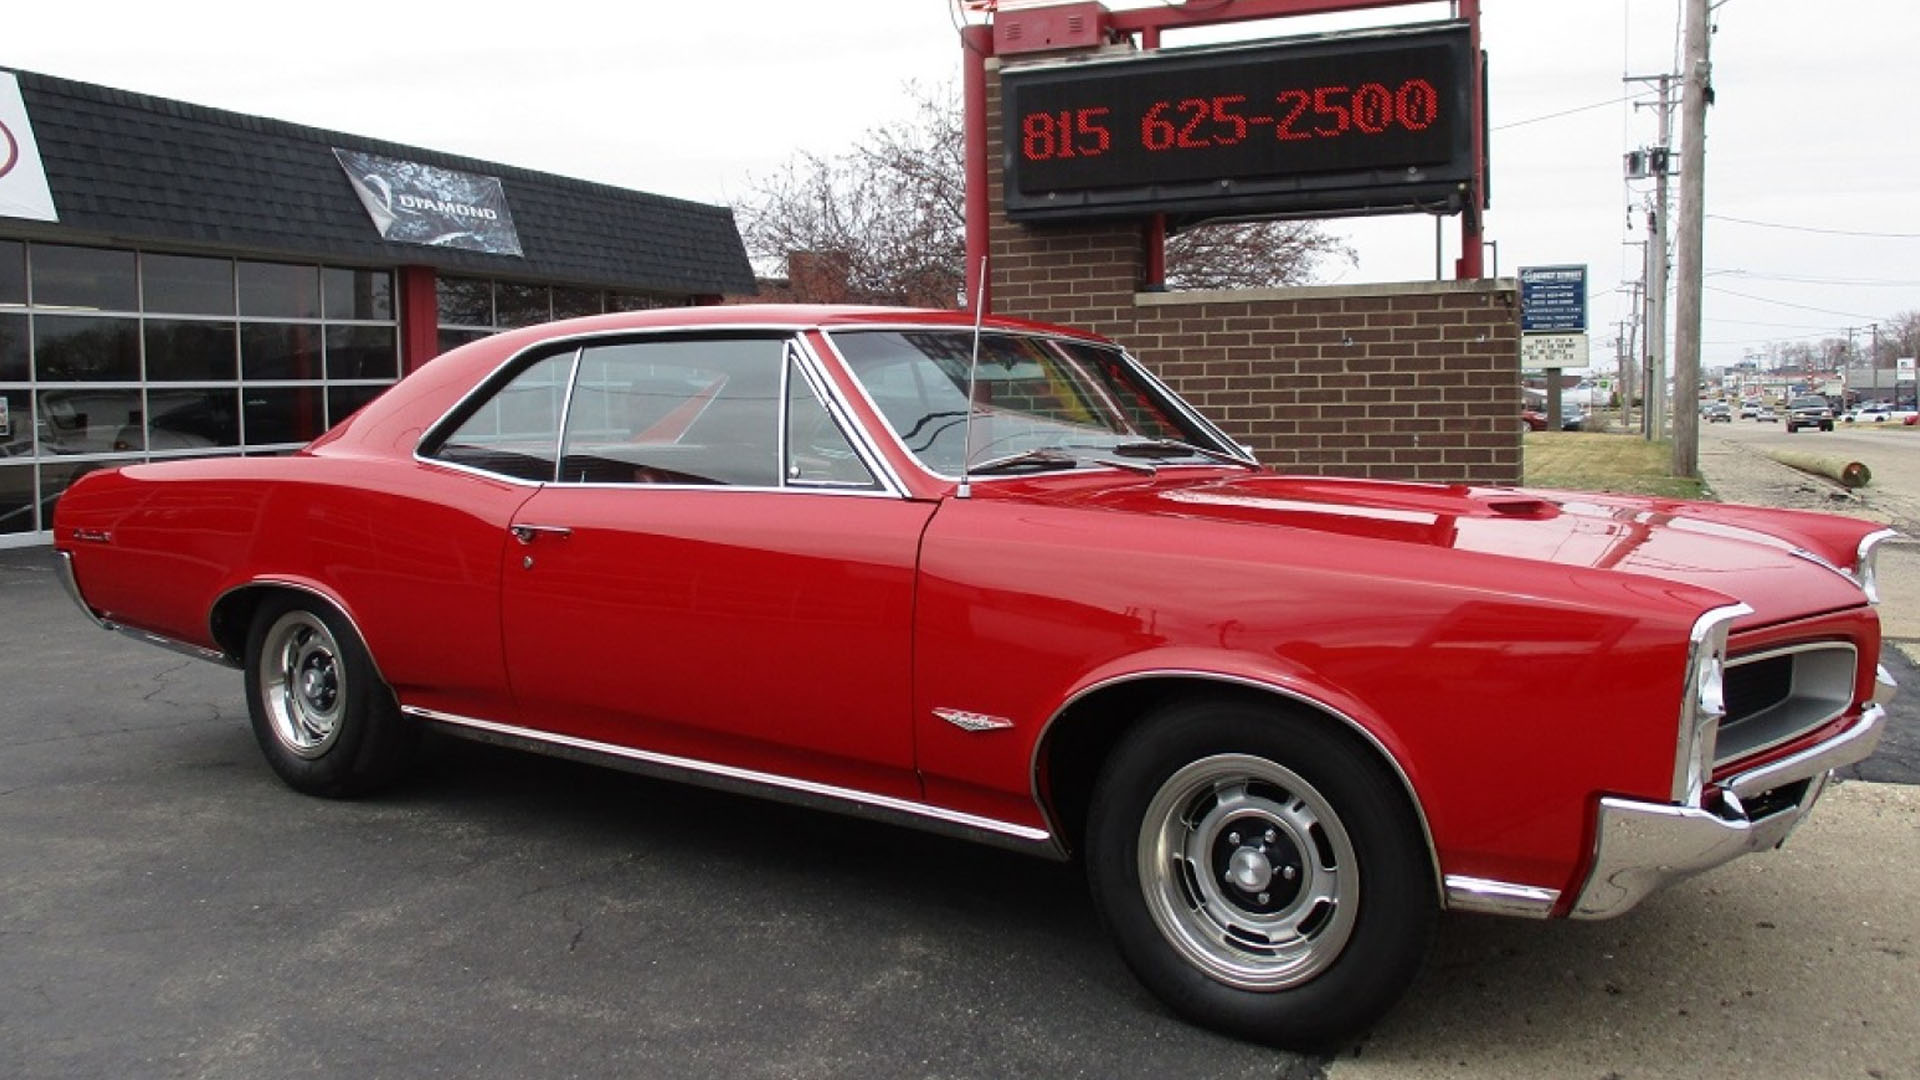 Before Lil' Red Corvette There Was Lil' Red GTO